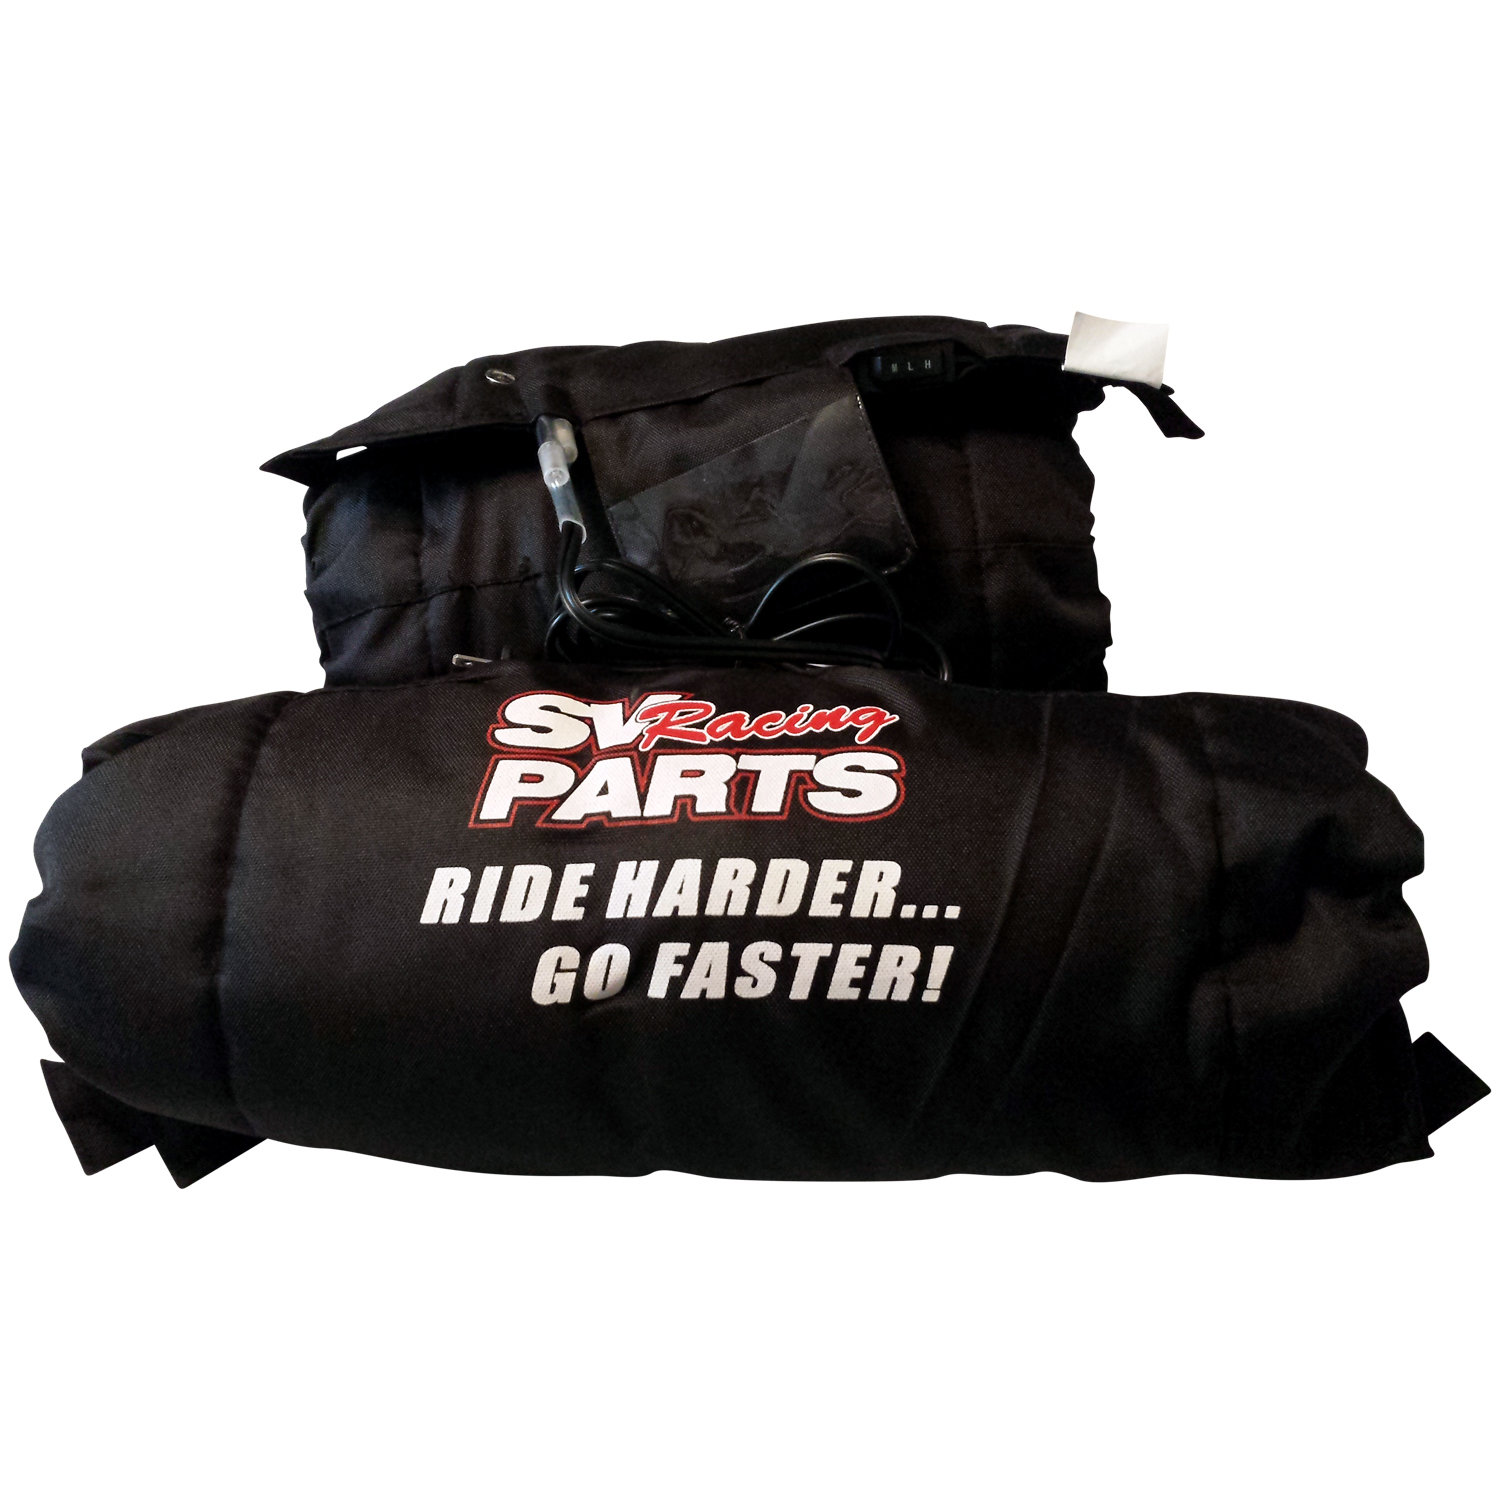 17 Inch Flat Track Series Tire Warmers for 120 Front - 120 Rear Tires on MiniMotard